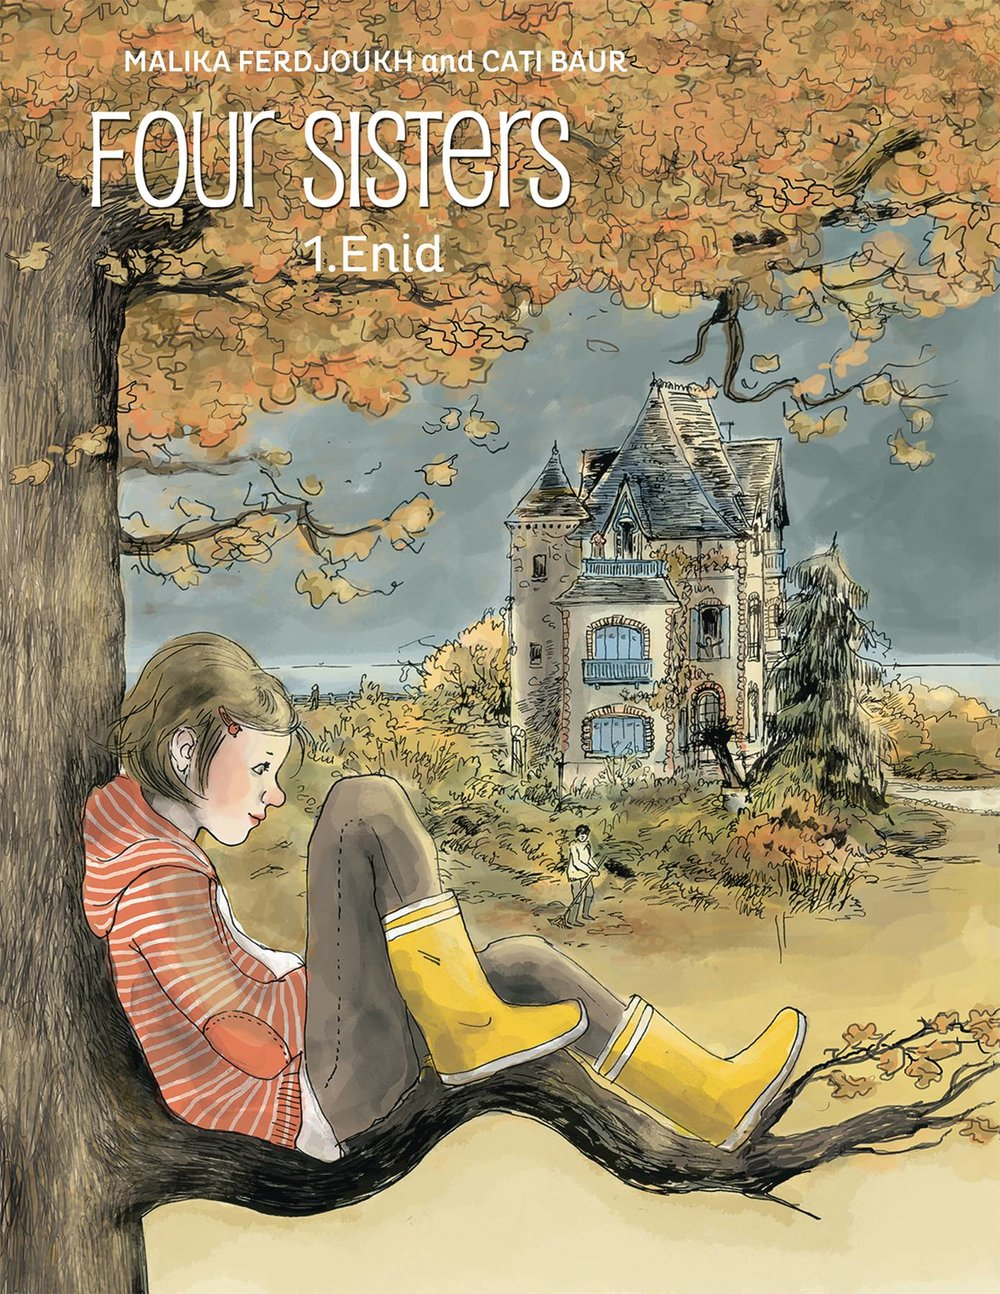 Four Sisters HC Vol 1 - Lauren's PickWriter: Cati BaurArtist: Malika FerdjoukhThe recently-orphaned Verdelaine sisters live in a constant state of controlled chaos of their family estate, built by an ancestor on the cliffs overlooking the Atlantic Ocean. Enid is the youngest at nine and often feels ignored by her older siblings, absorbed as they are in their own storylines. Instead she occupies herself with animals, outdoor adventures, and speaking with the ghosts of her dead parents. Yes, you read that right. Artist Malika Ferdjoukh adapts Cati Baur's novels in a gorgeous and whimsical style, developing the unique personality of each Verdelaine with every stroke of her pen. This graphic novel is the first in a series, and I eagerly anticipate the release of the next installment!